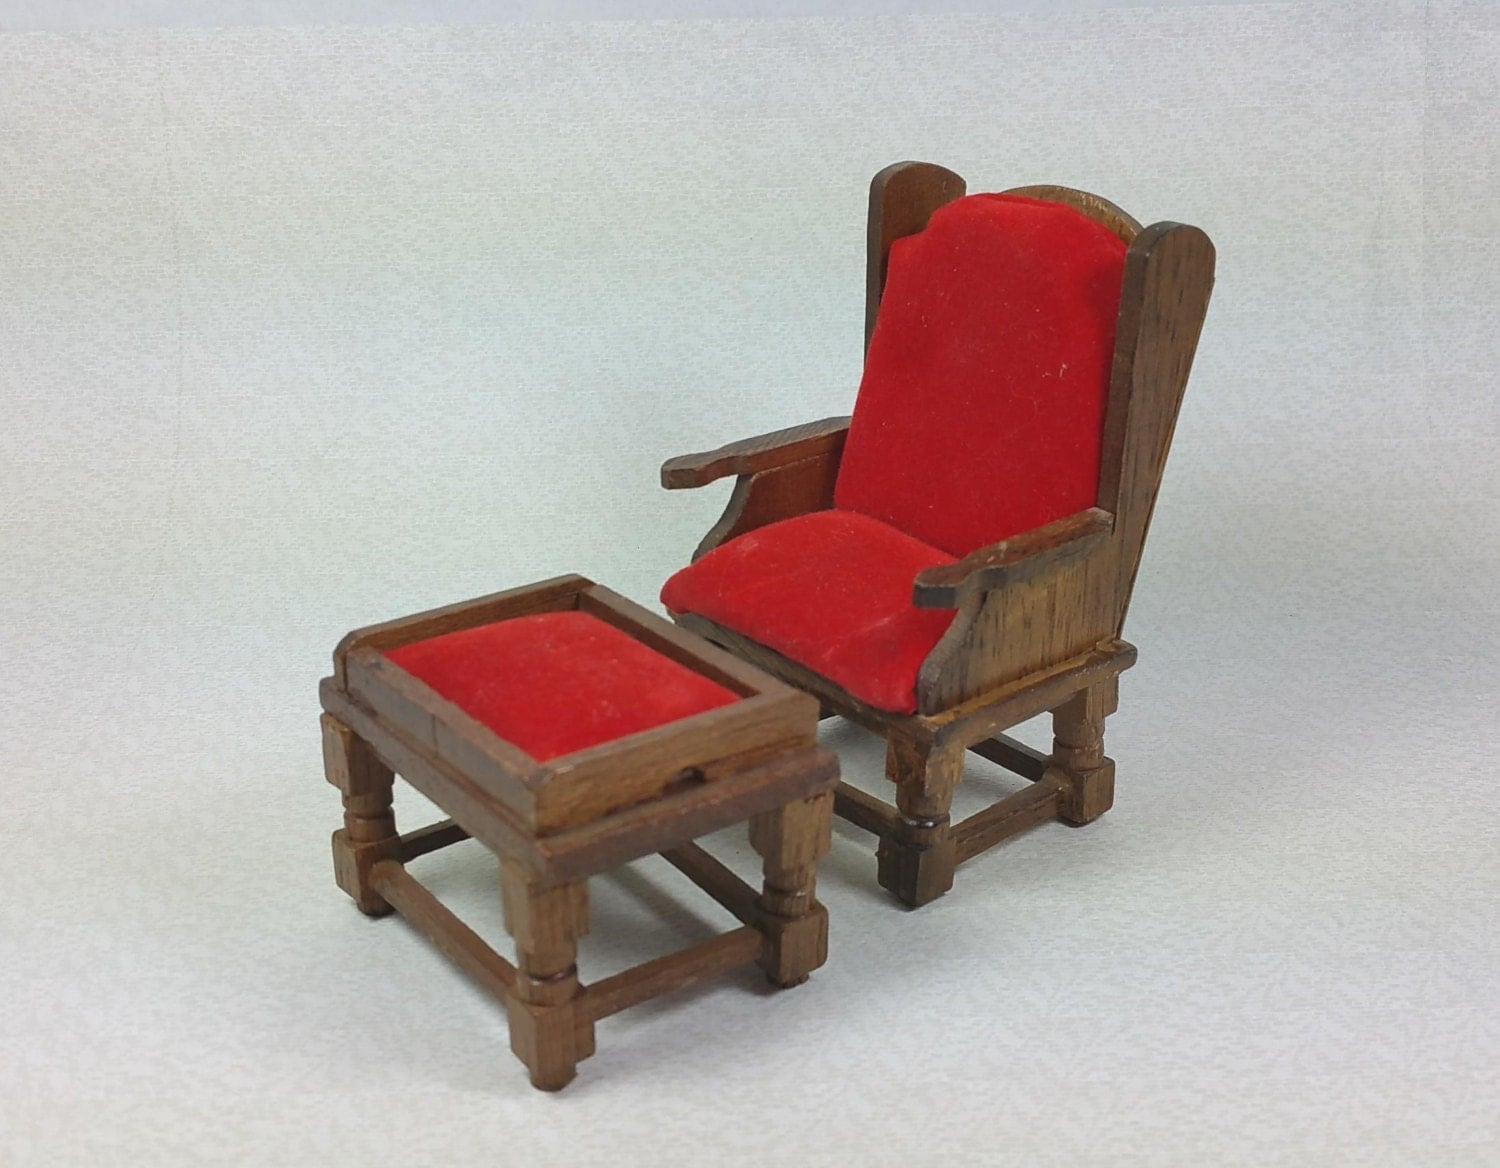 MINIATURE CHAIR and OTTOMAN 112 Scale Wood